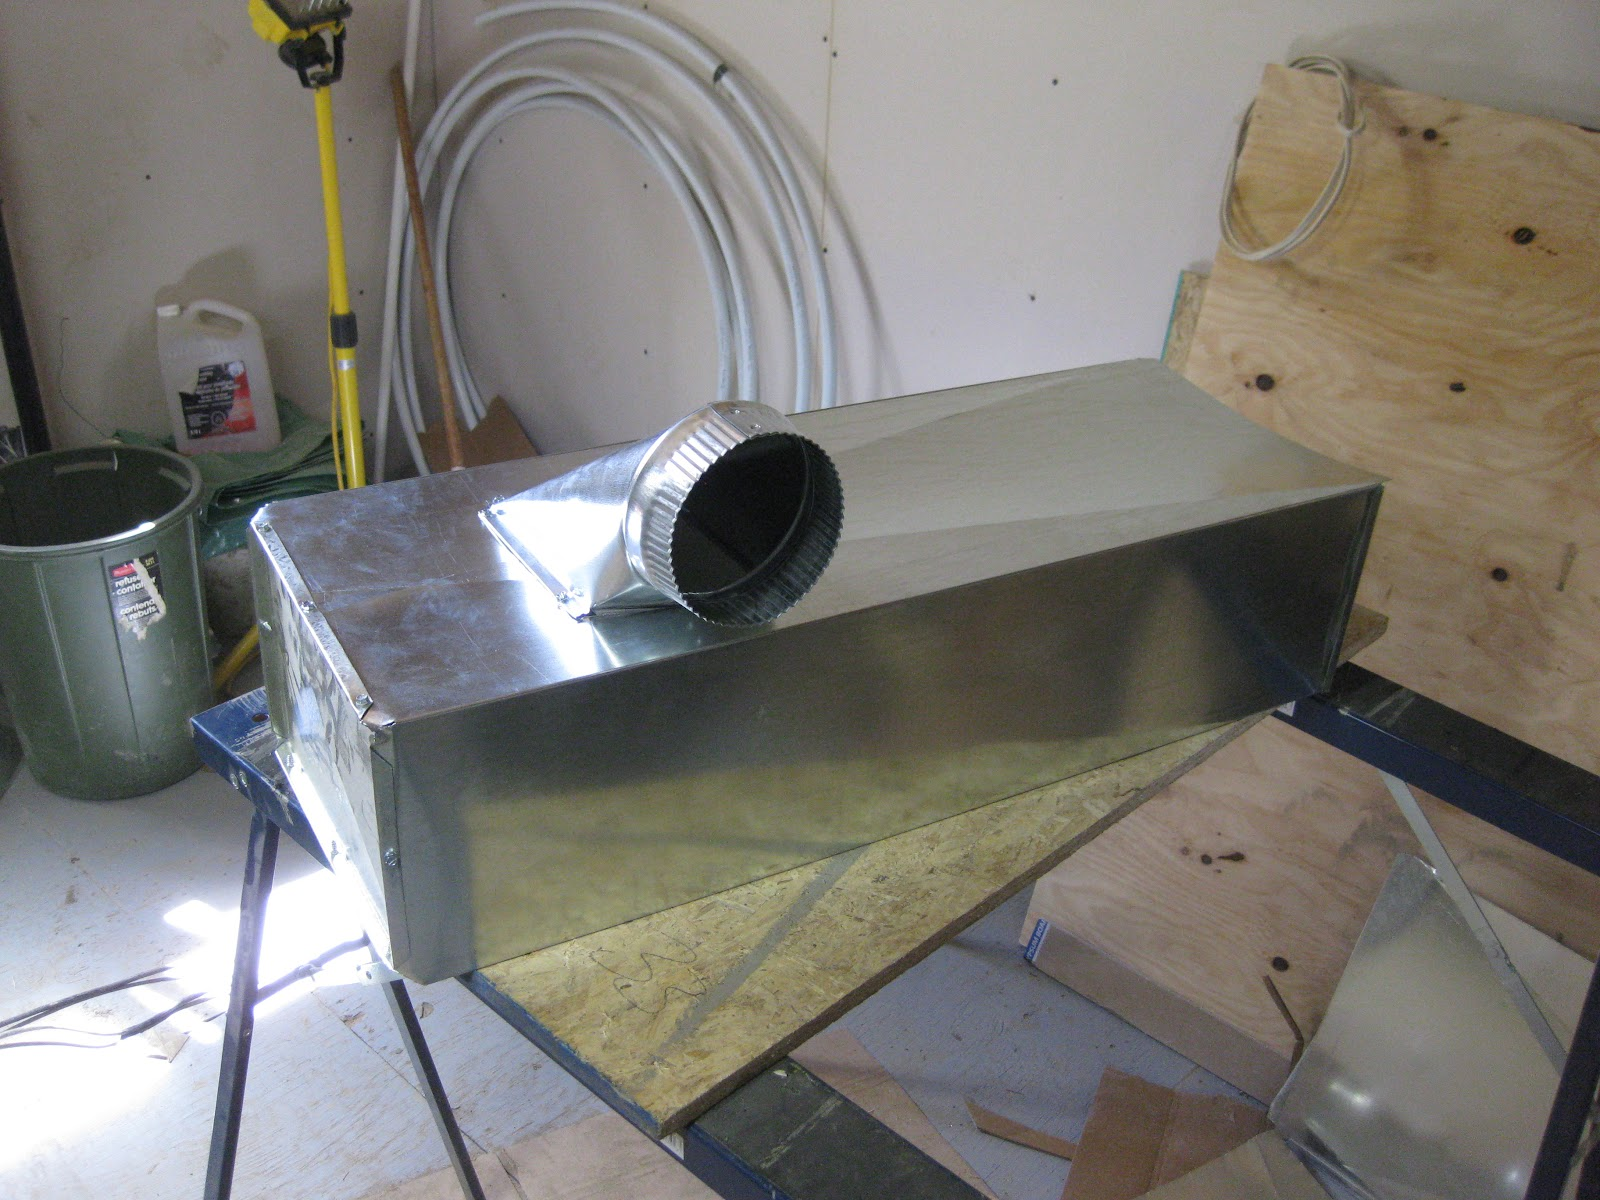 Simple man, simple plan.: Done Furnace Ducting